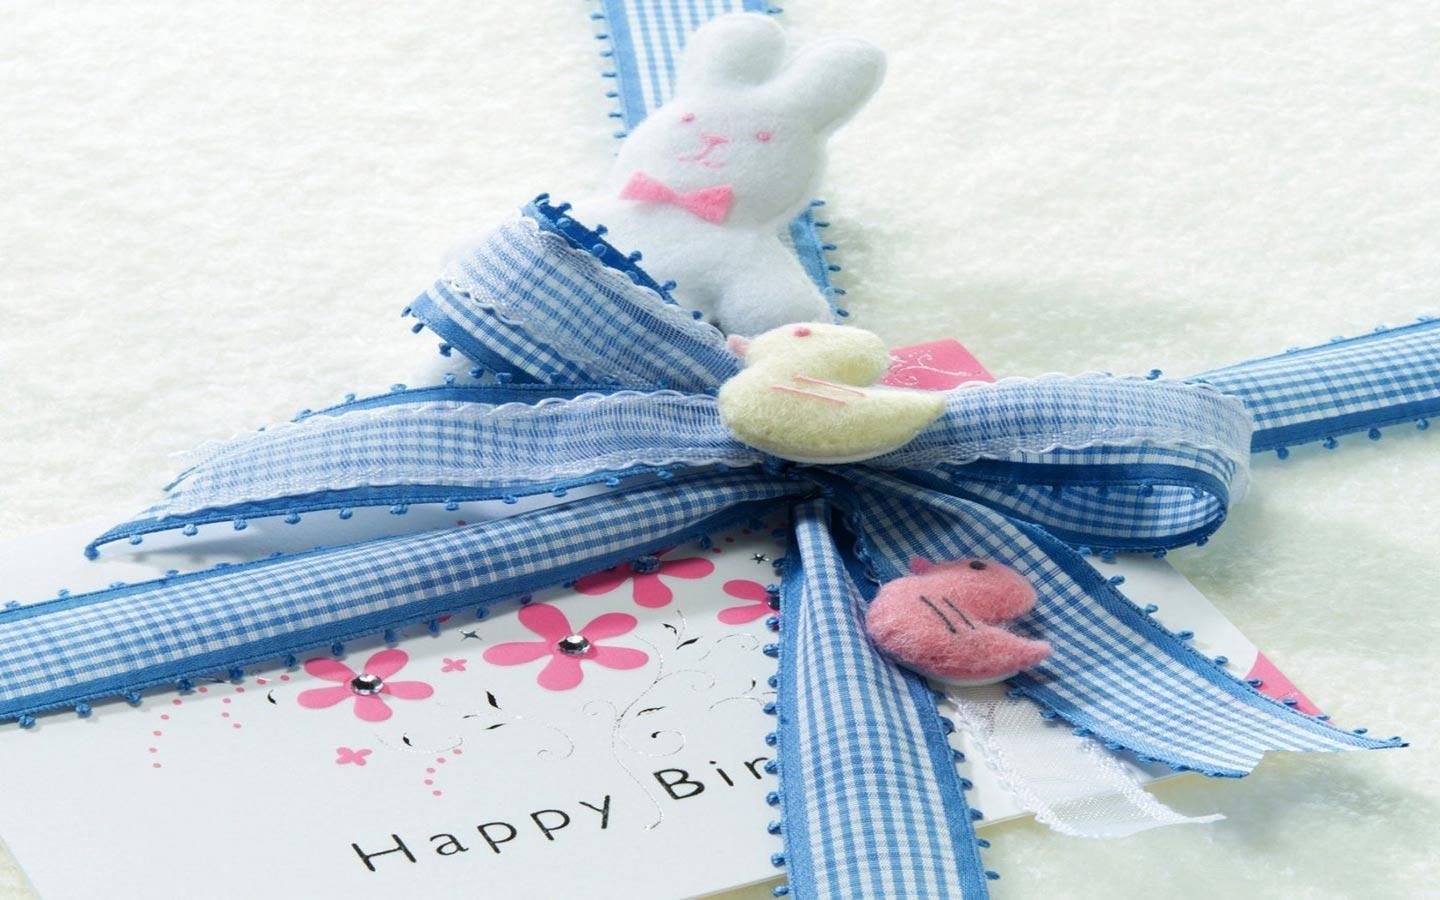 Cute happy birthday hd picture http69hdwallpaperscute cute happy birthday hd picture http69hdwallpaperscute negle Image collections